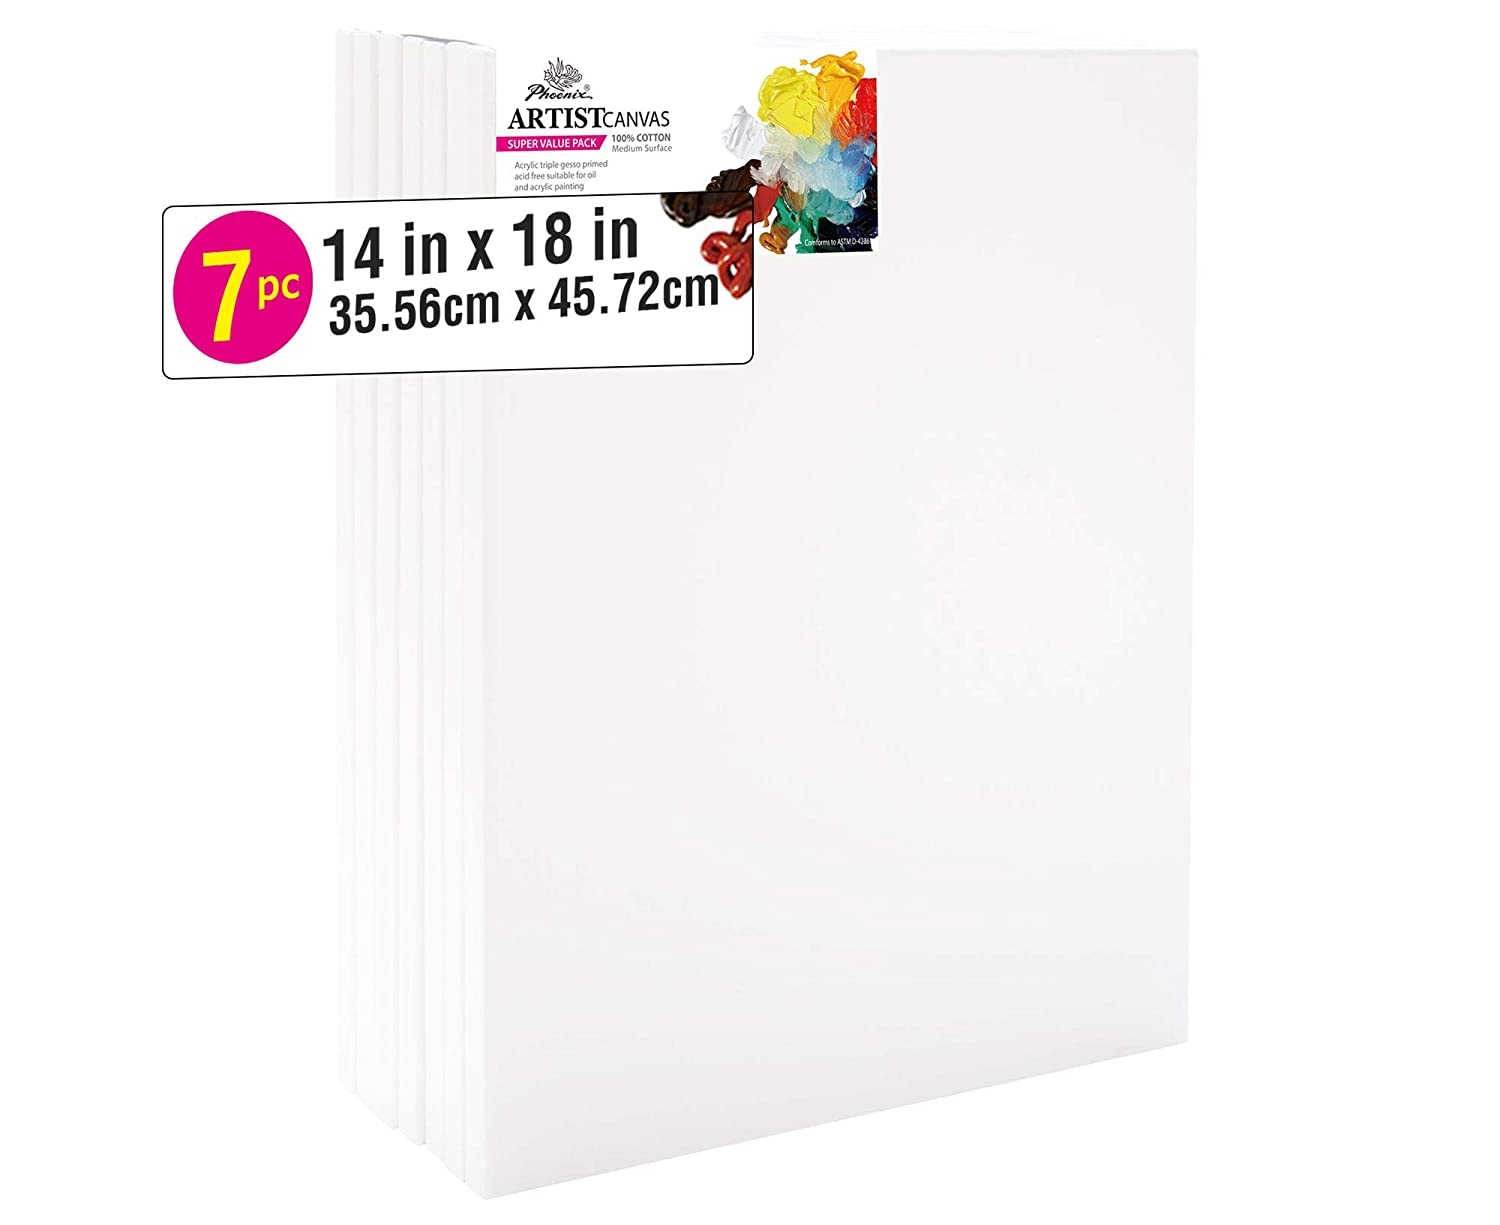 10x20 Inch // 6 Pack 5//8 Inch Profile of Super Value Pack for Acrylics Oils /& Other Painting Media PHOENIX Pre Stretched Canvas for Painting